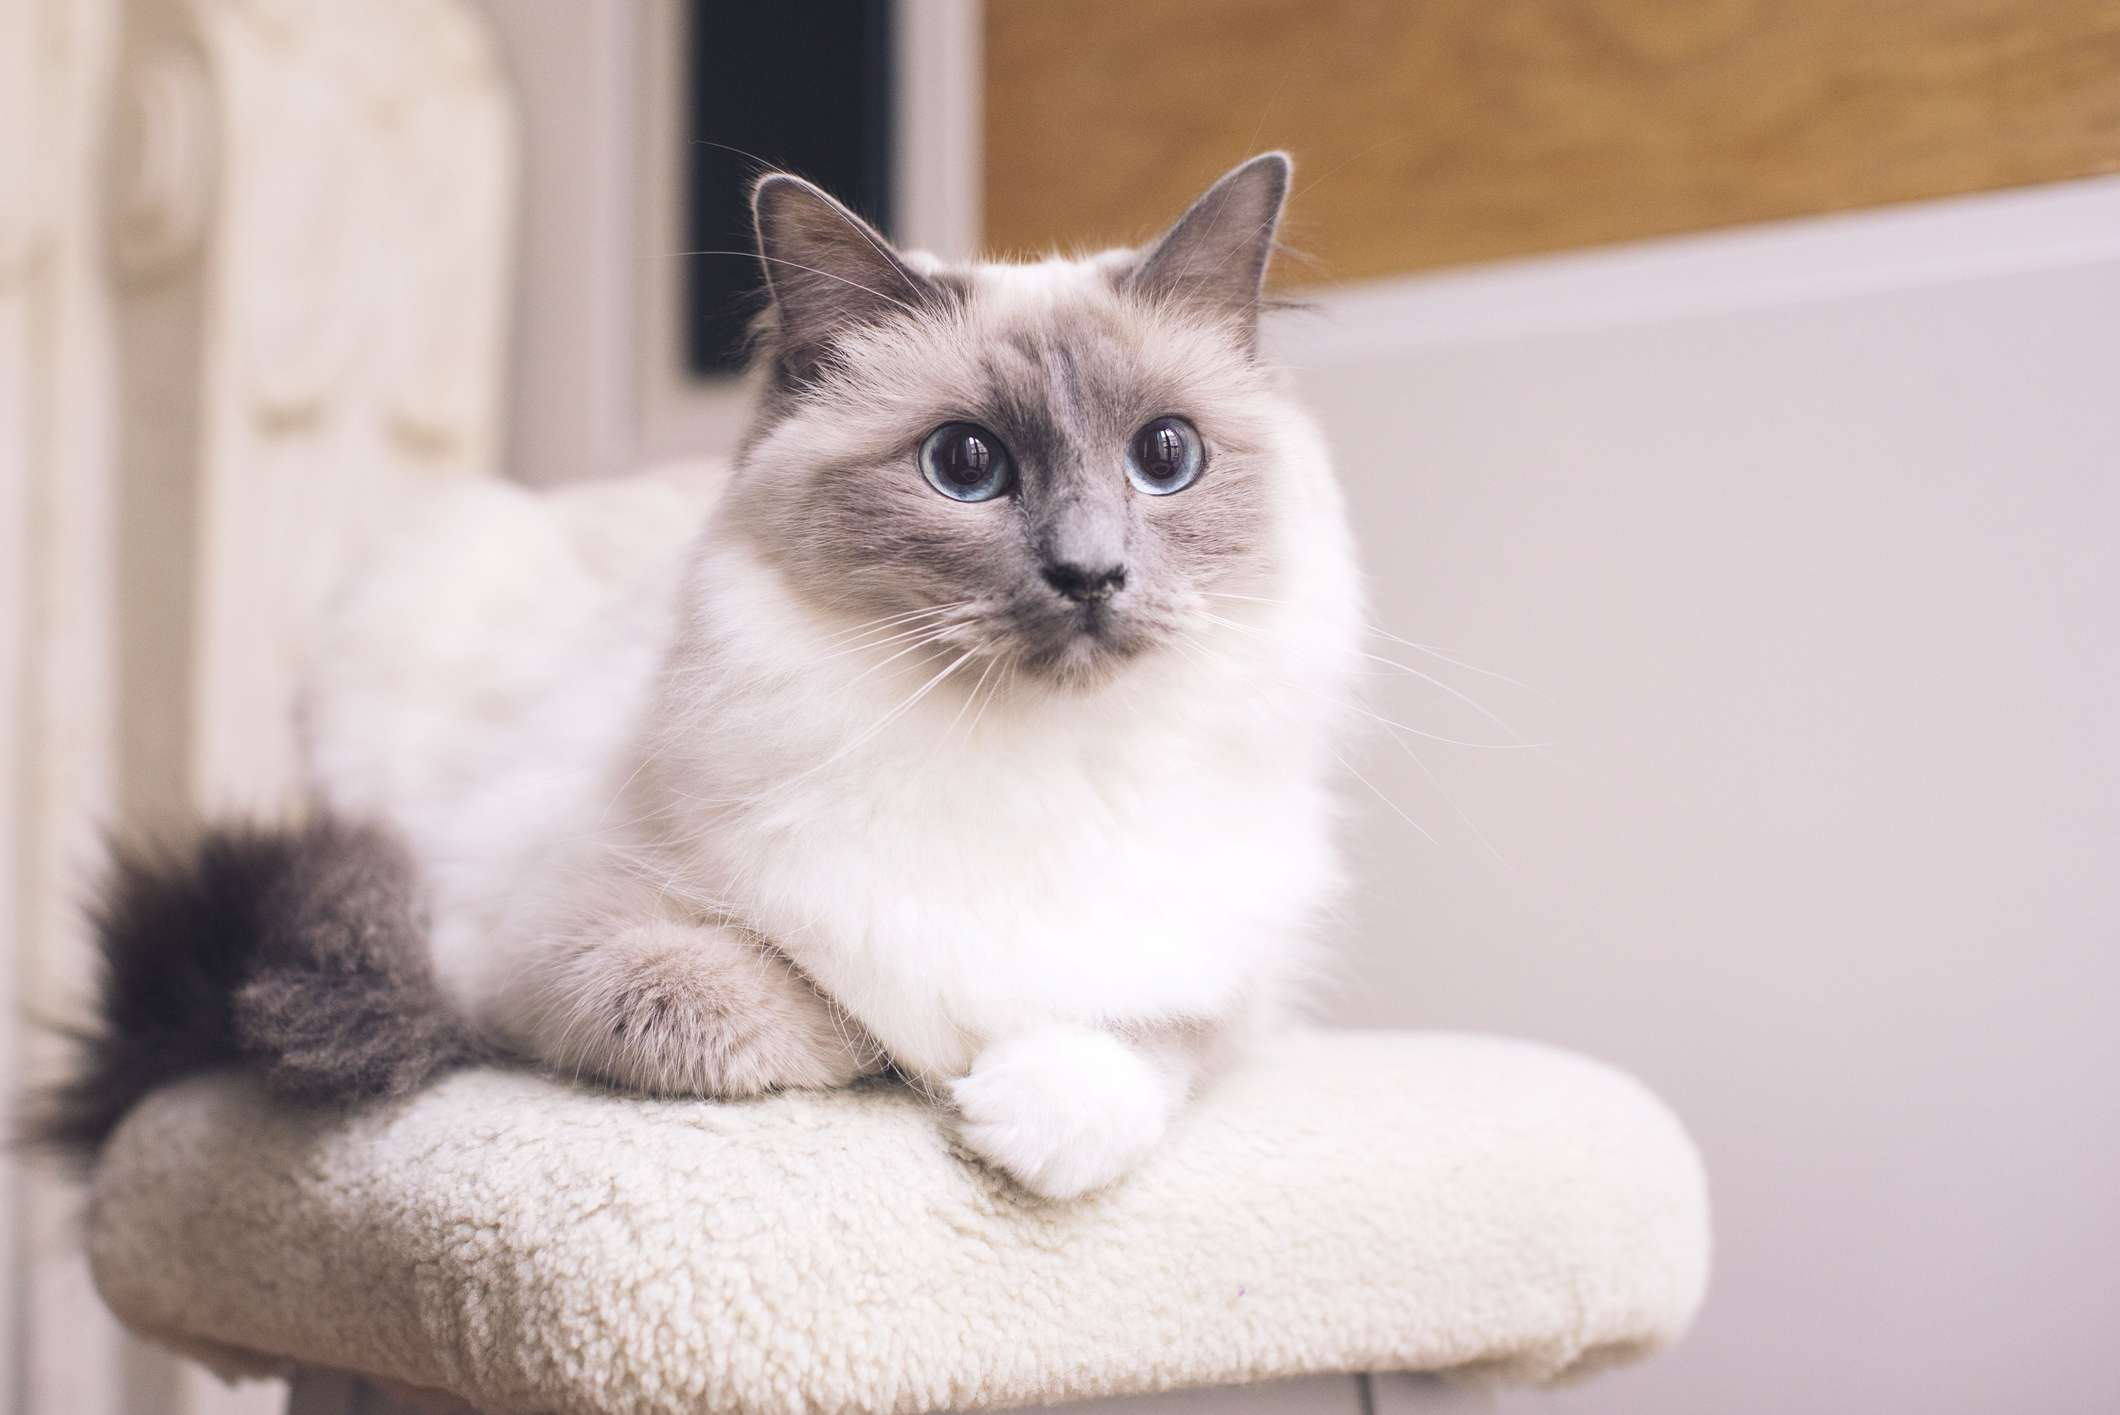 fluffy gray and white ragdoll cat sitting on a pedestal